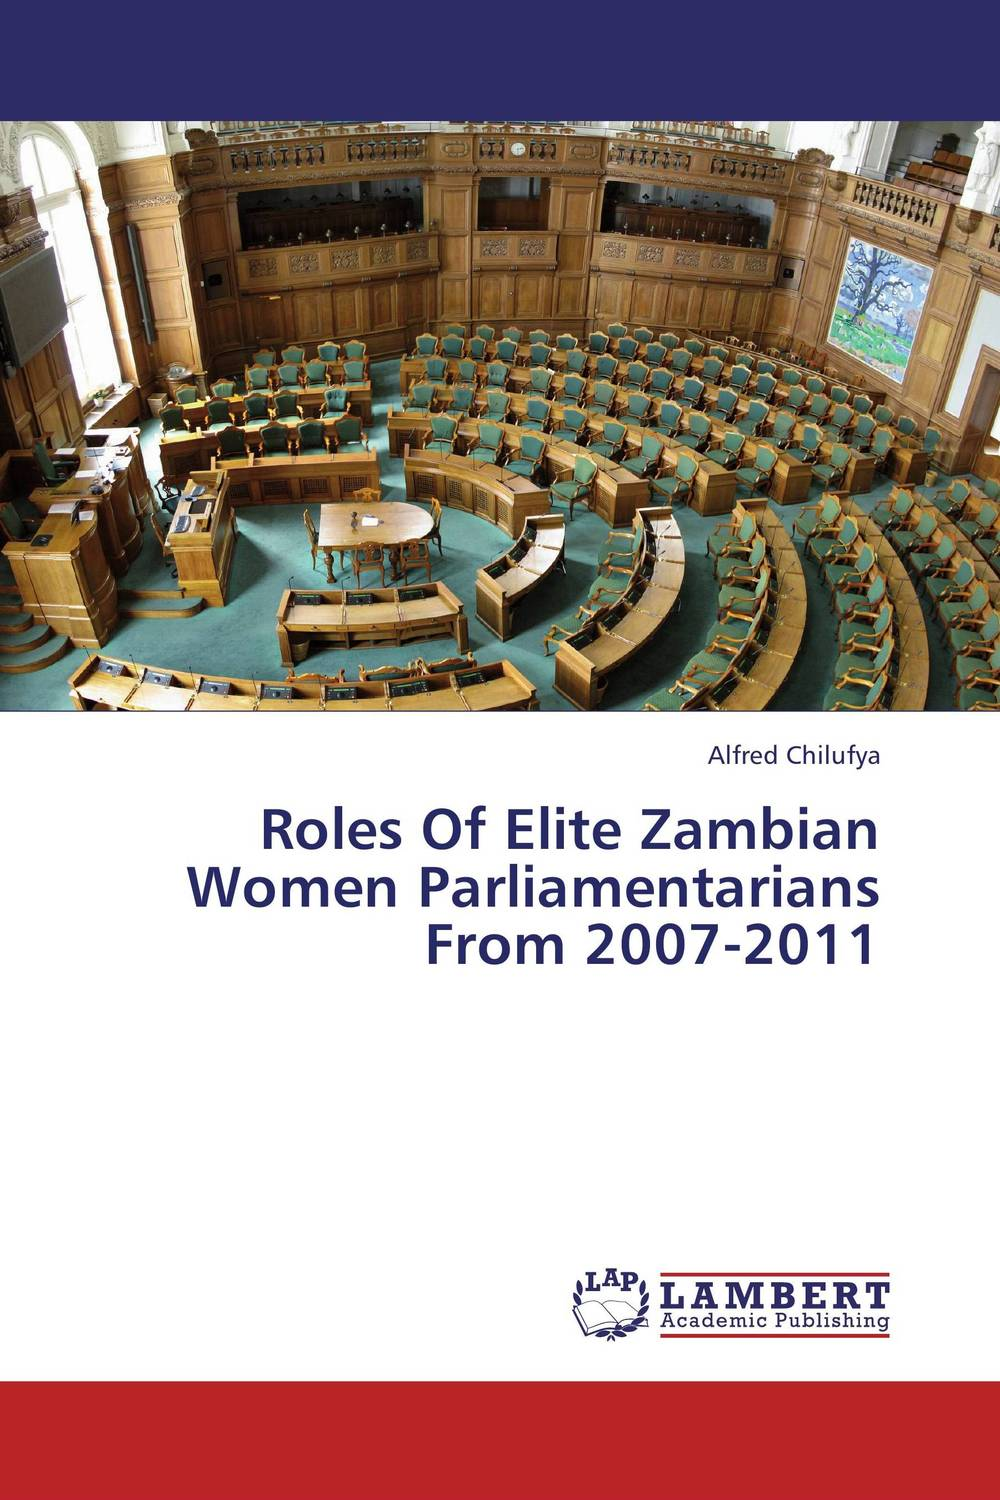 Roles Of Elite Zambian Women Parliamentarians From 2007-2011